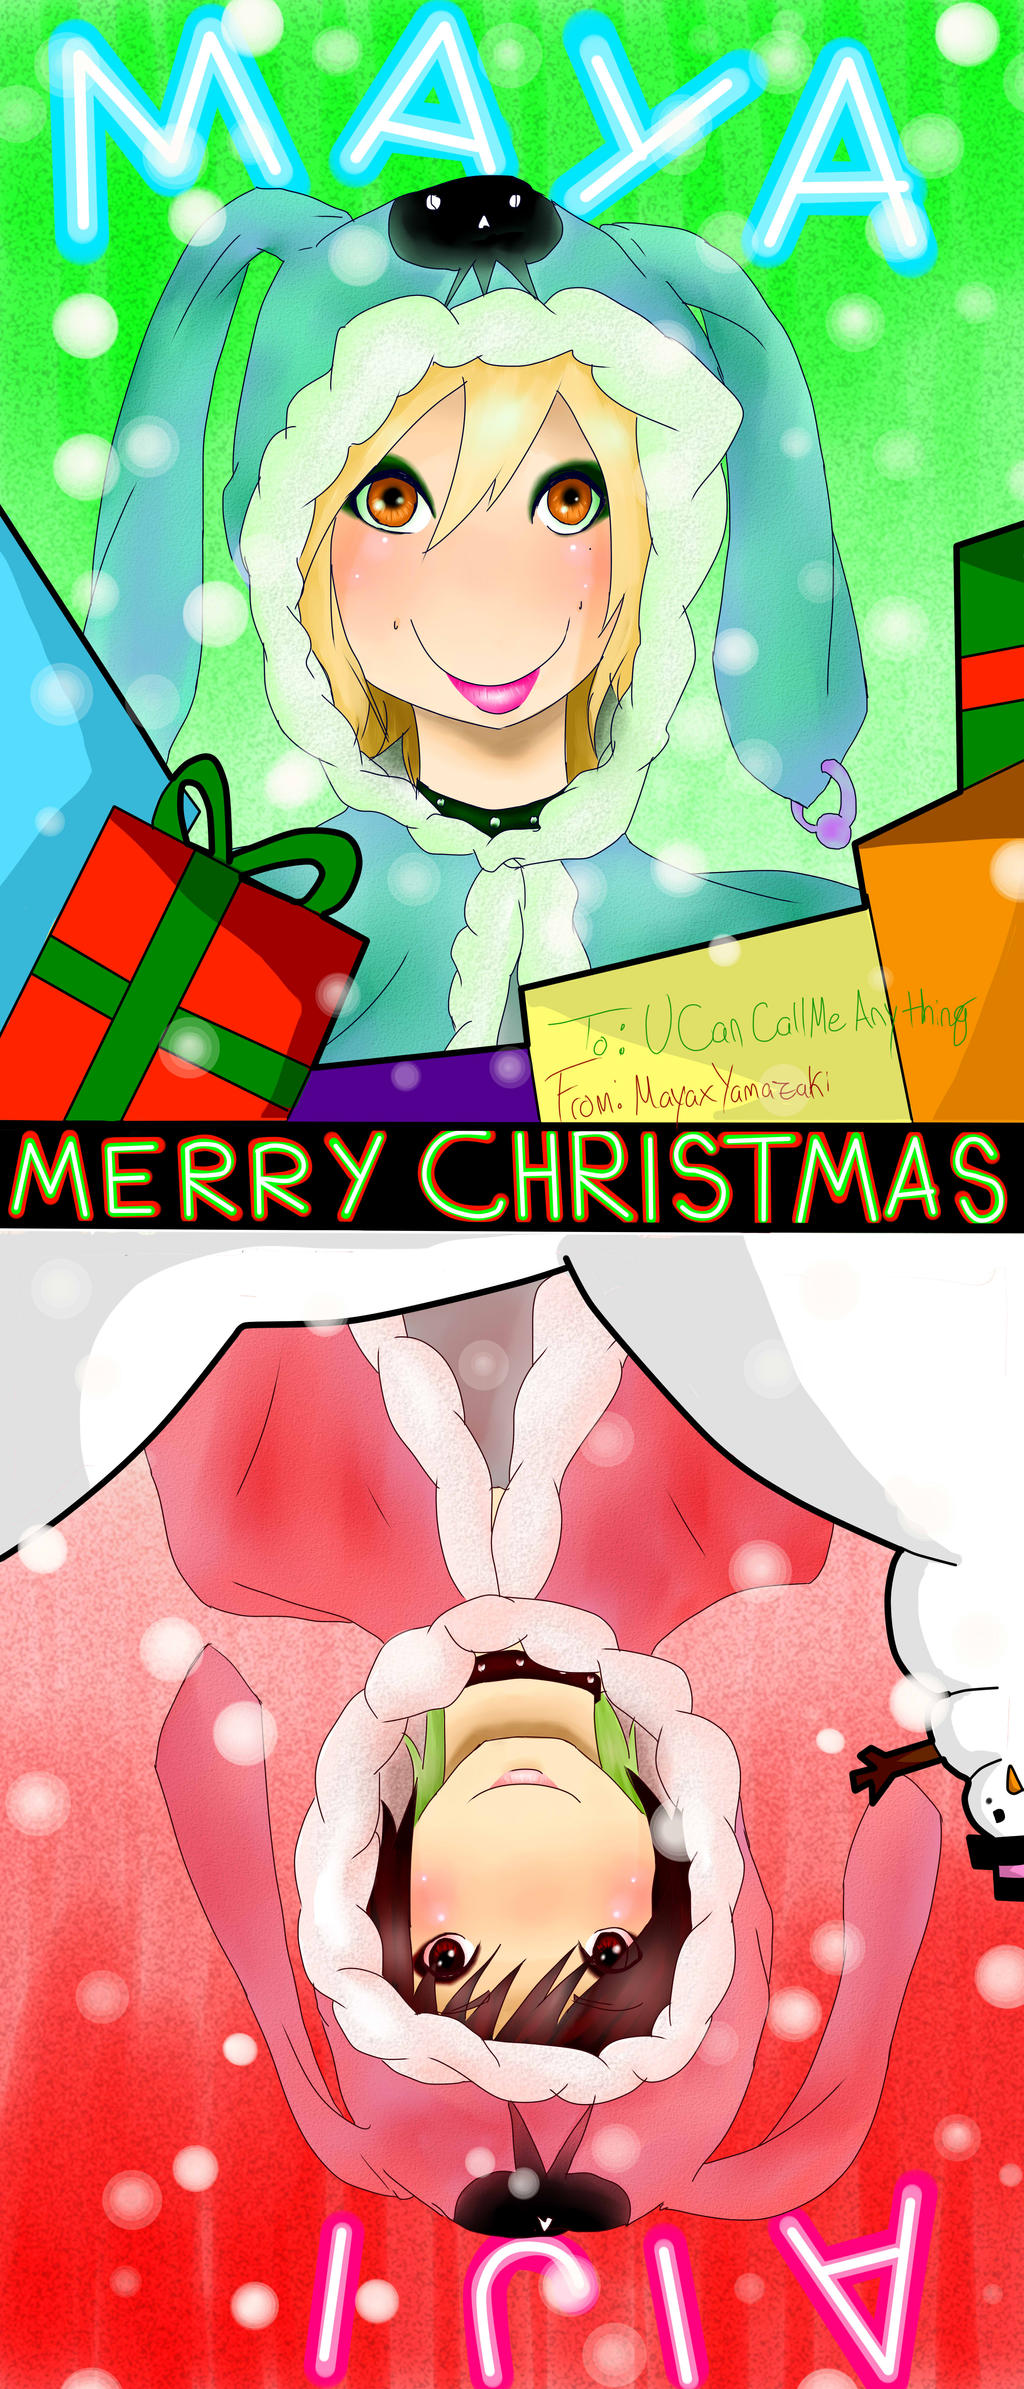 LM.C SECRET SANTA by MAYAxYAMAZAKI